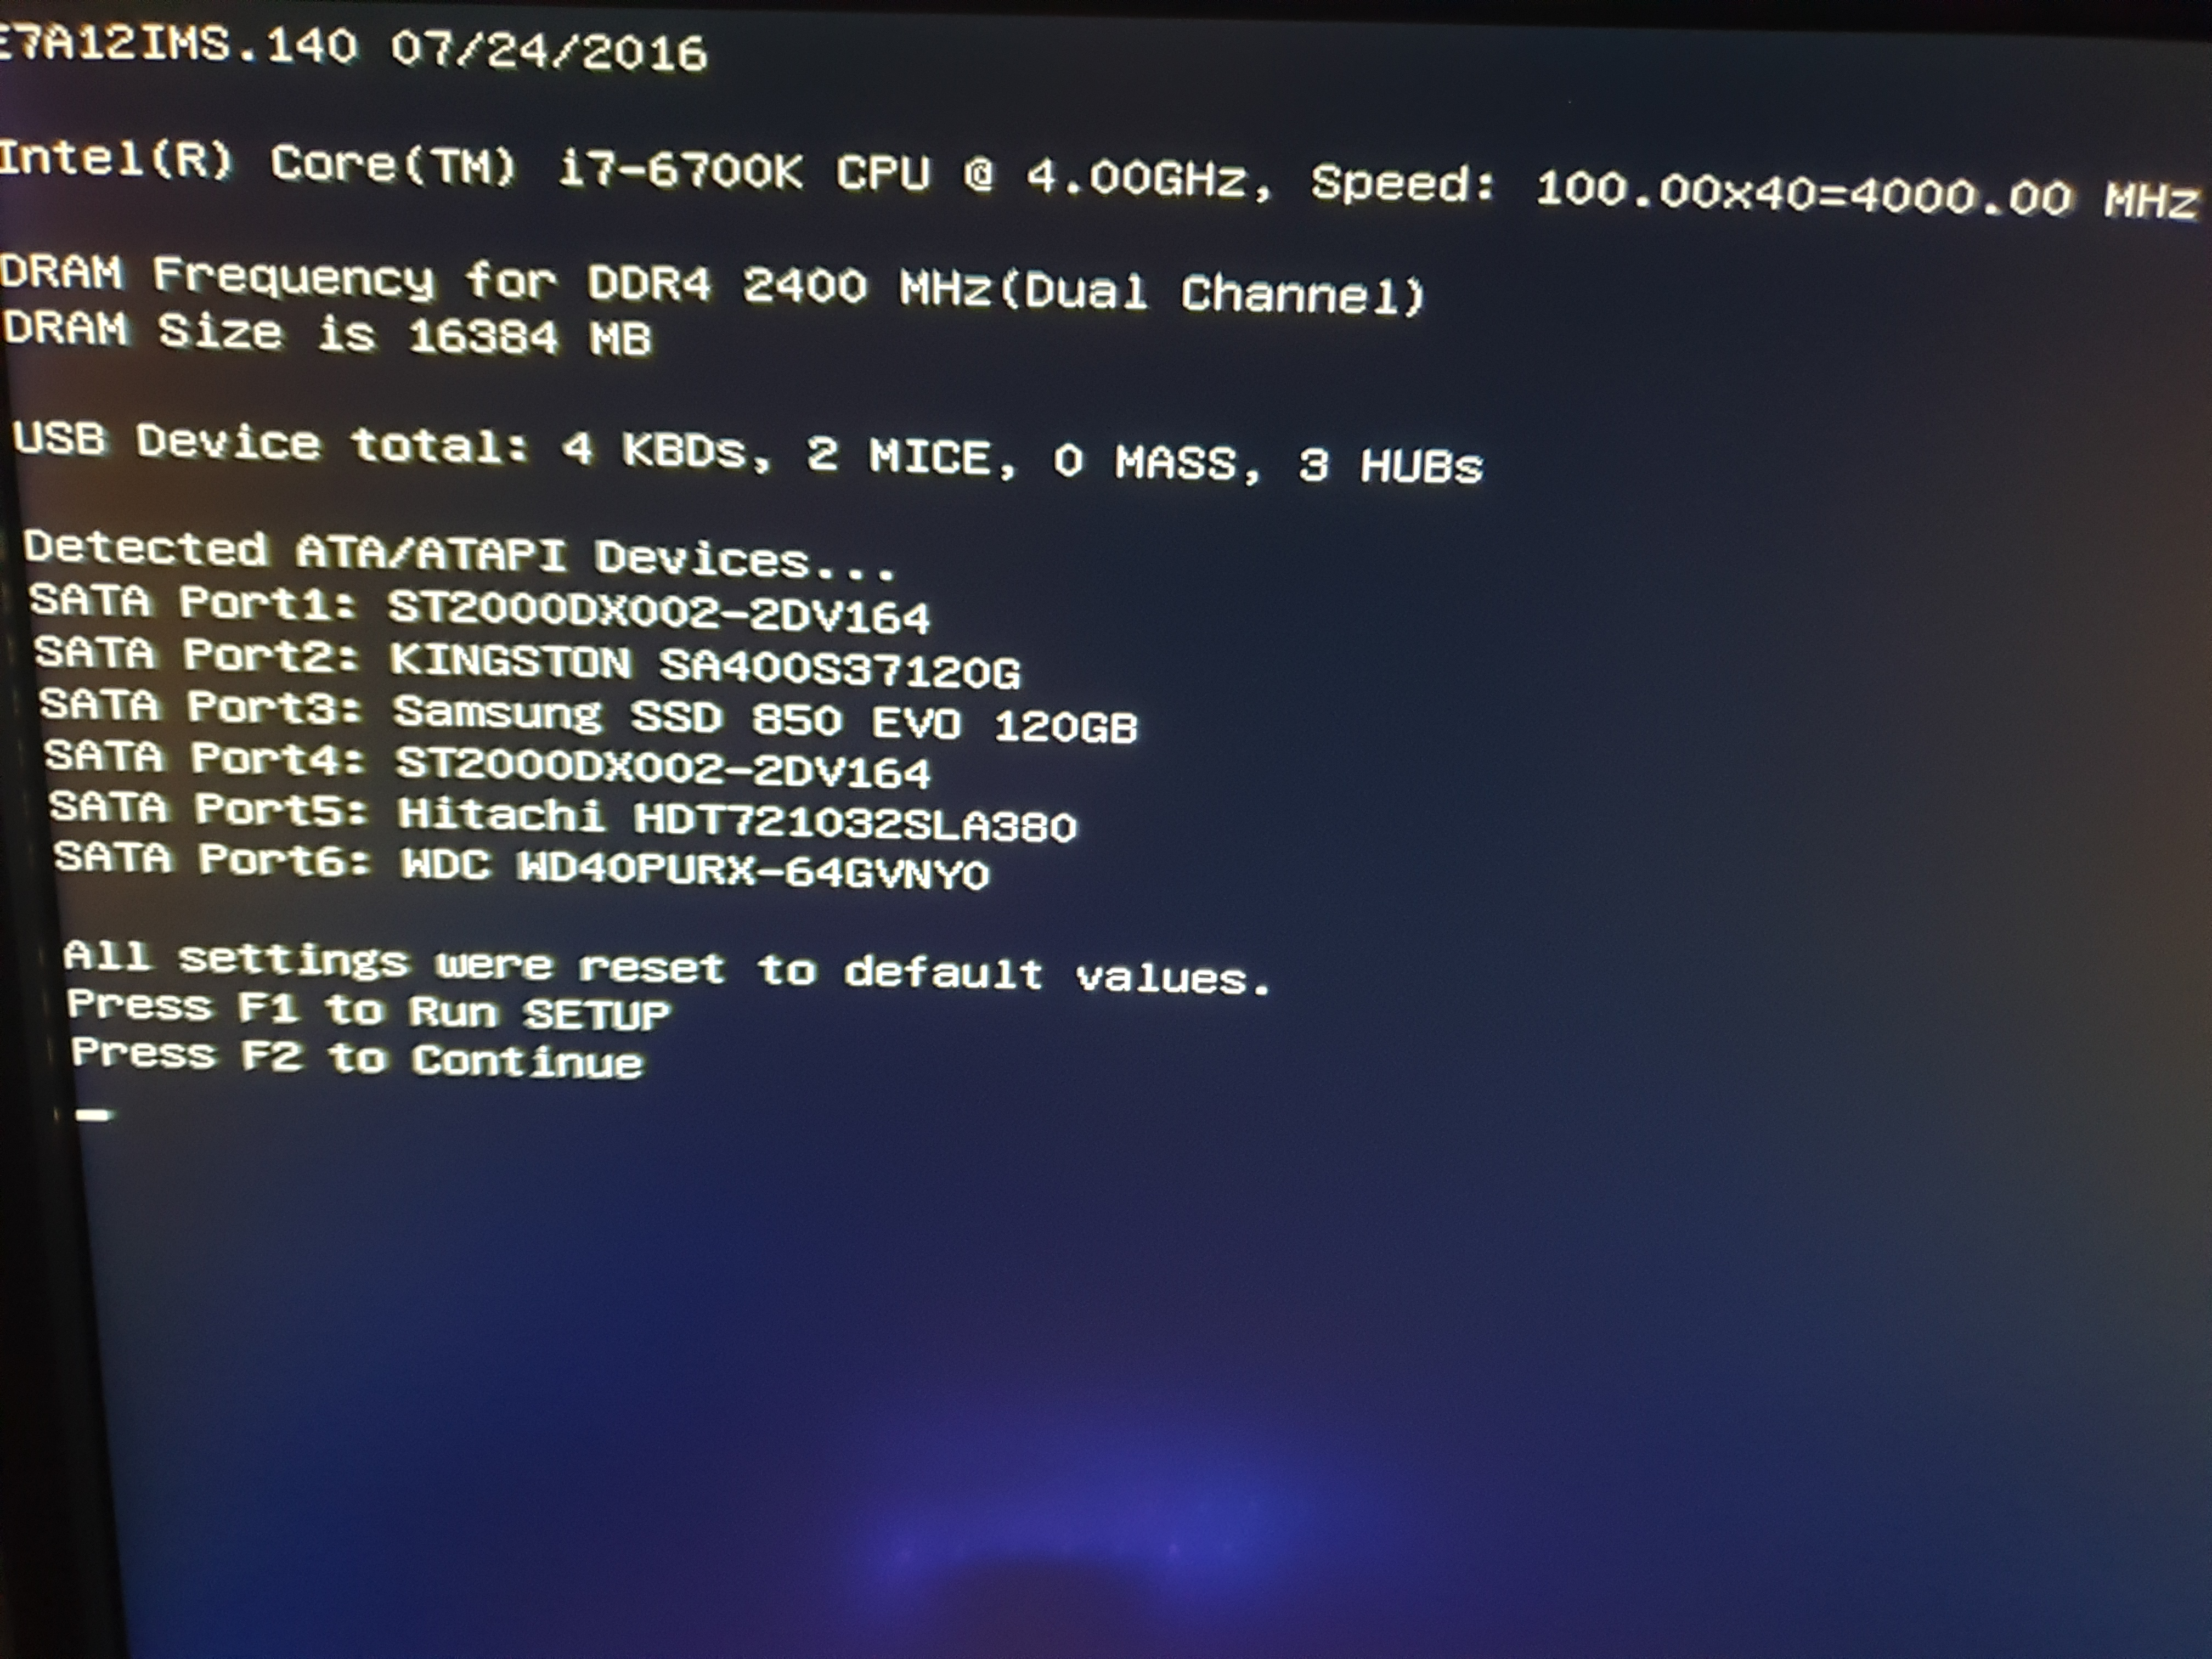 All setting have been reset to default values  Boot message